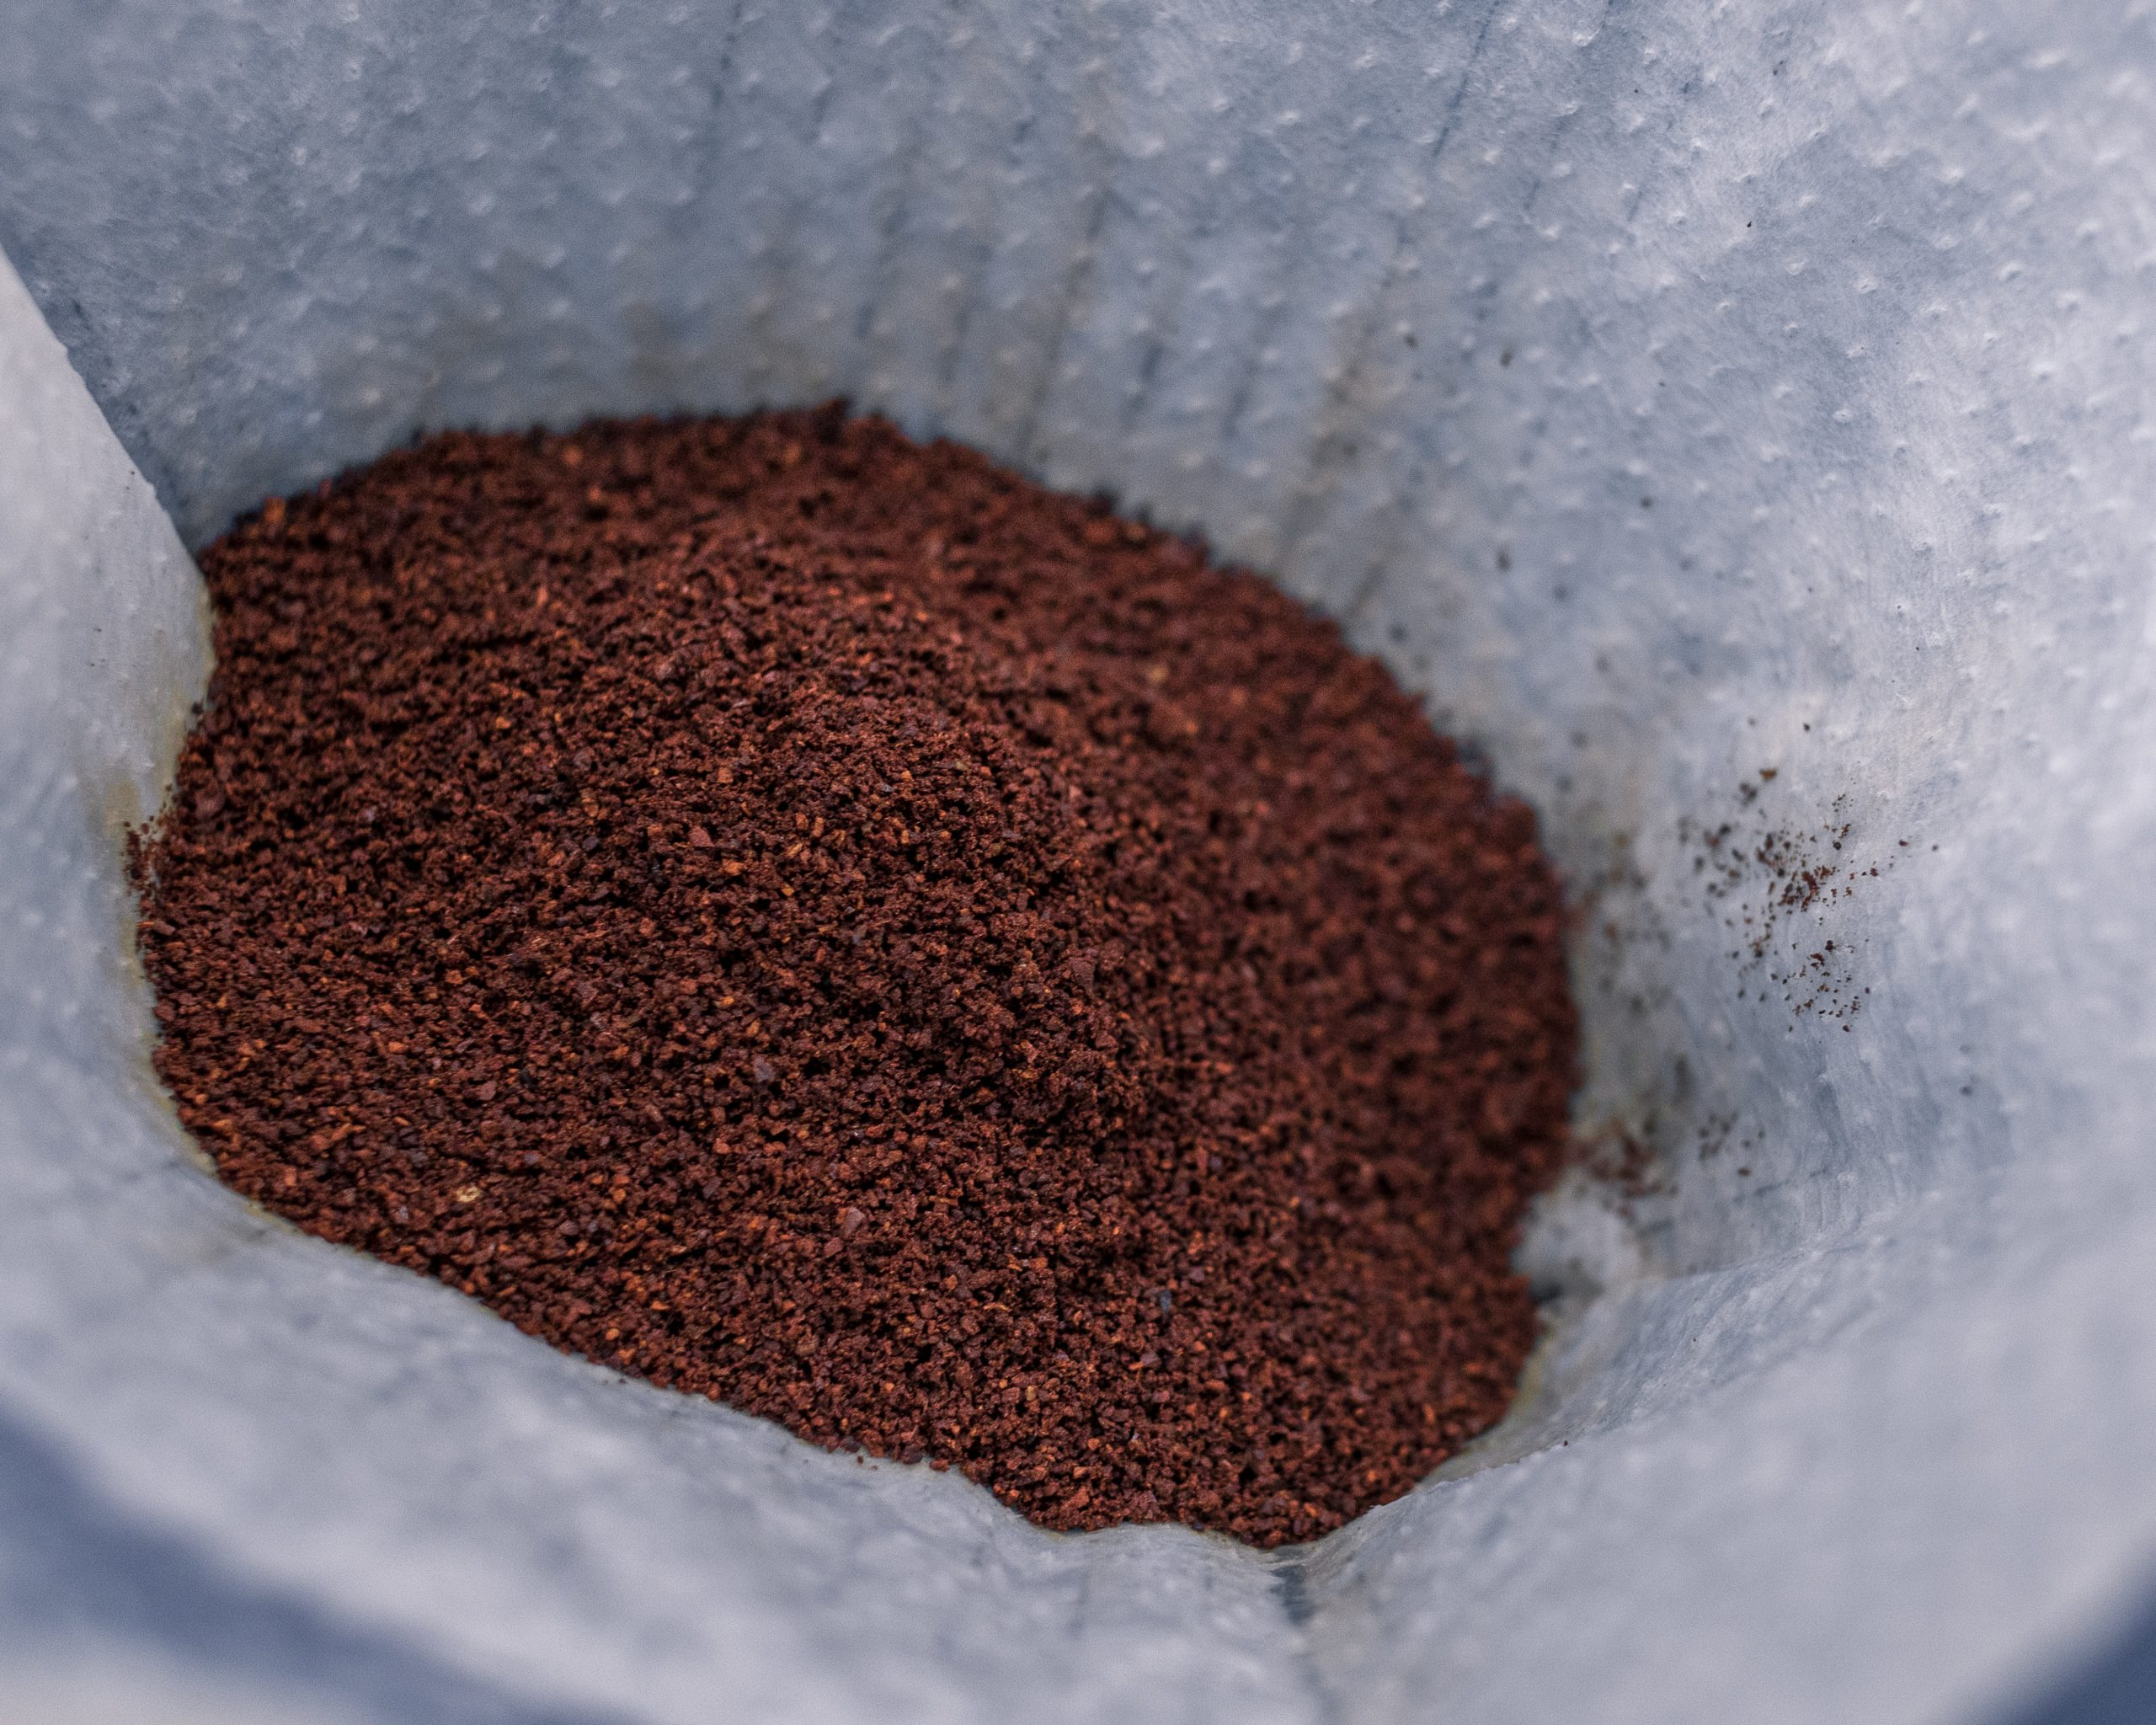 coffee grounds on a filter paper